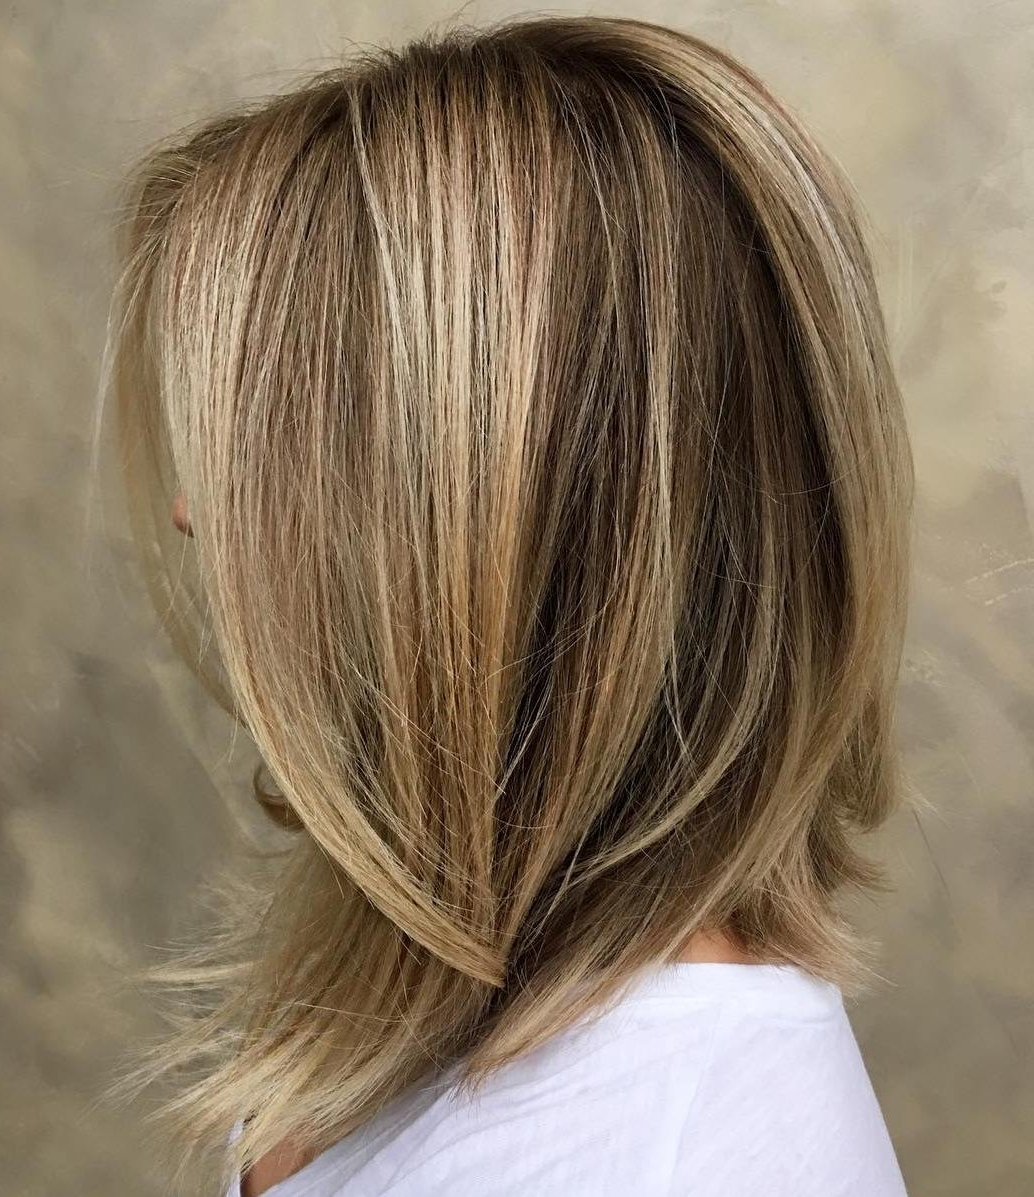 Favorite Blunt Cut White Gold Lob Blonde Hairstyles Inside 60 Inspiring Long Bob Hairstyles And Lob Haircuts  (View 13 of 20)